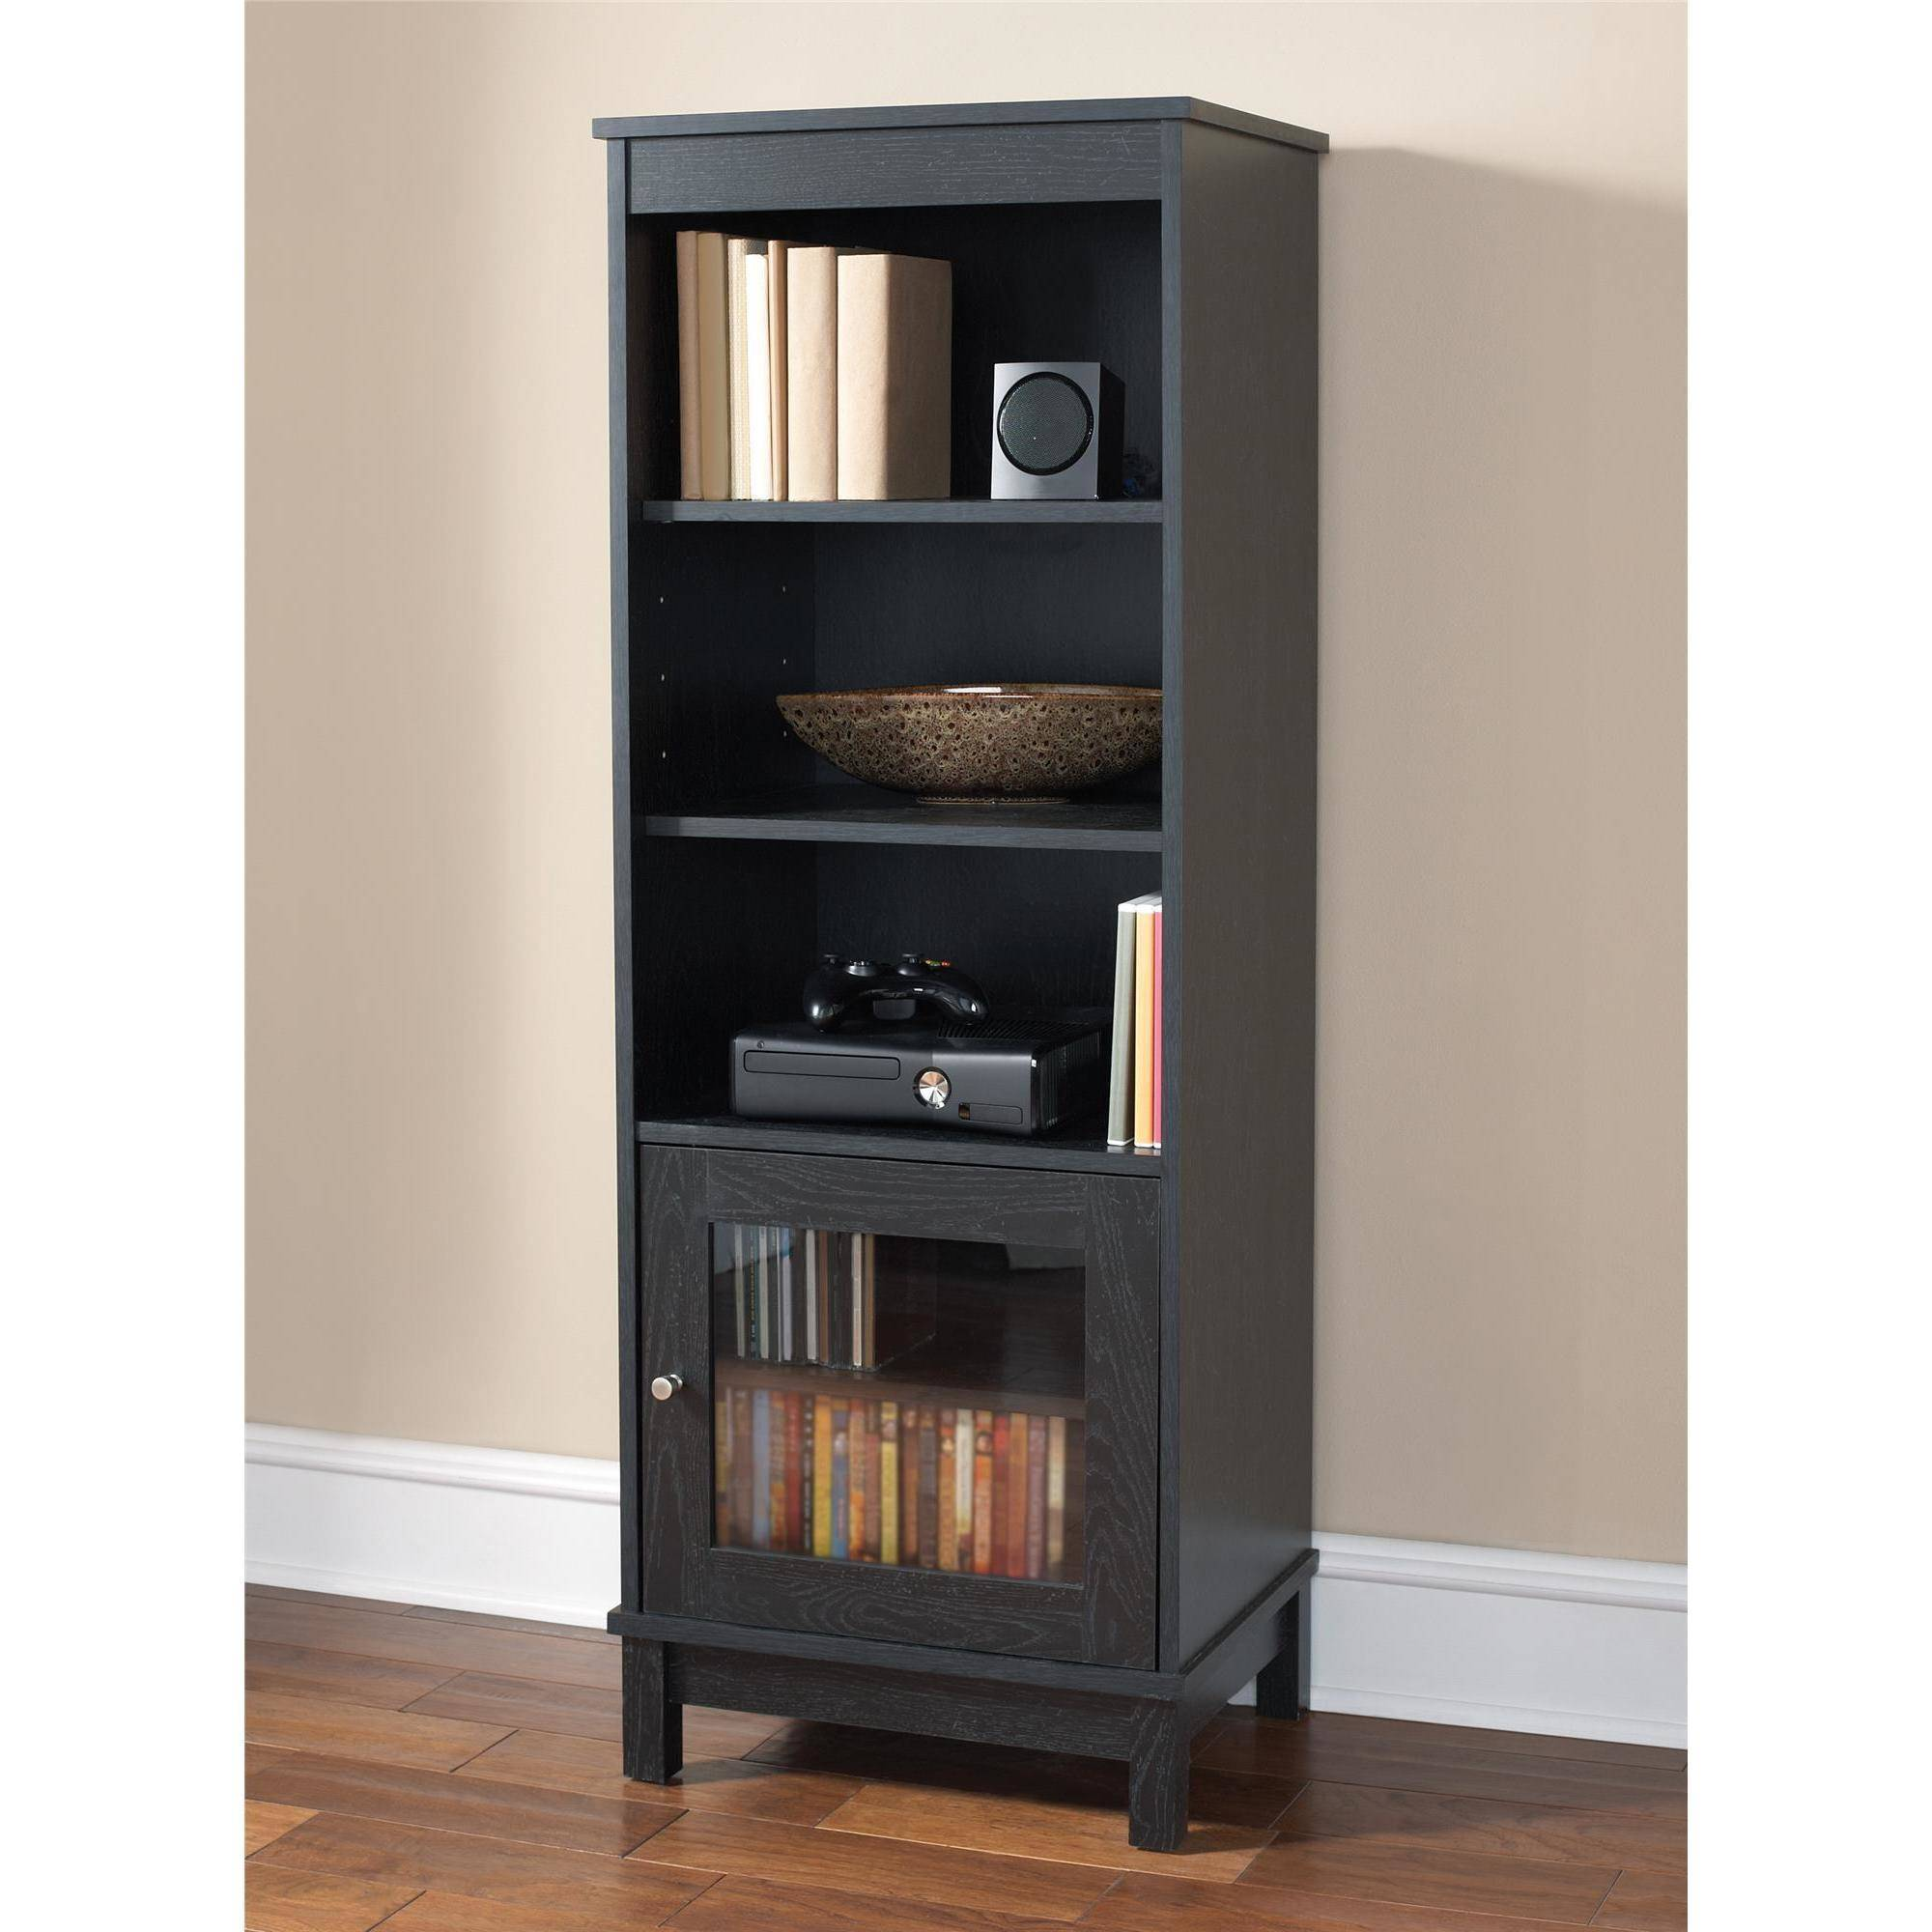 Superieur Mainstays Media Storage Bookcase, Multiple Finishes